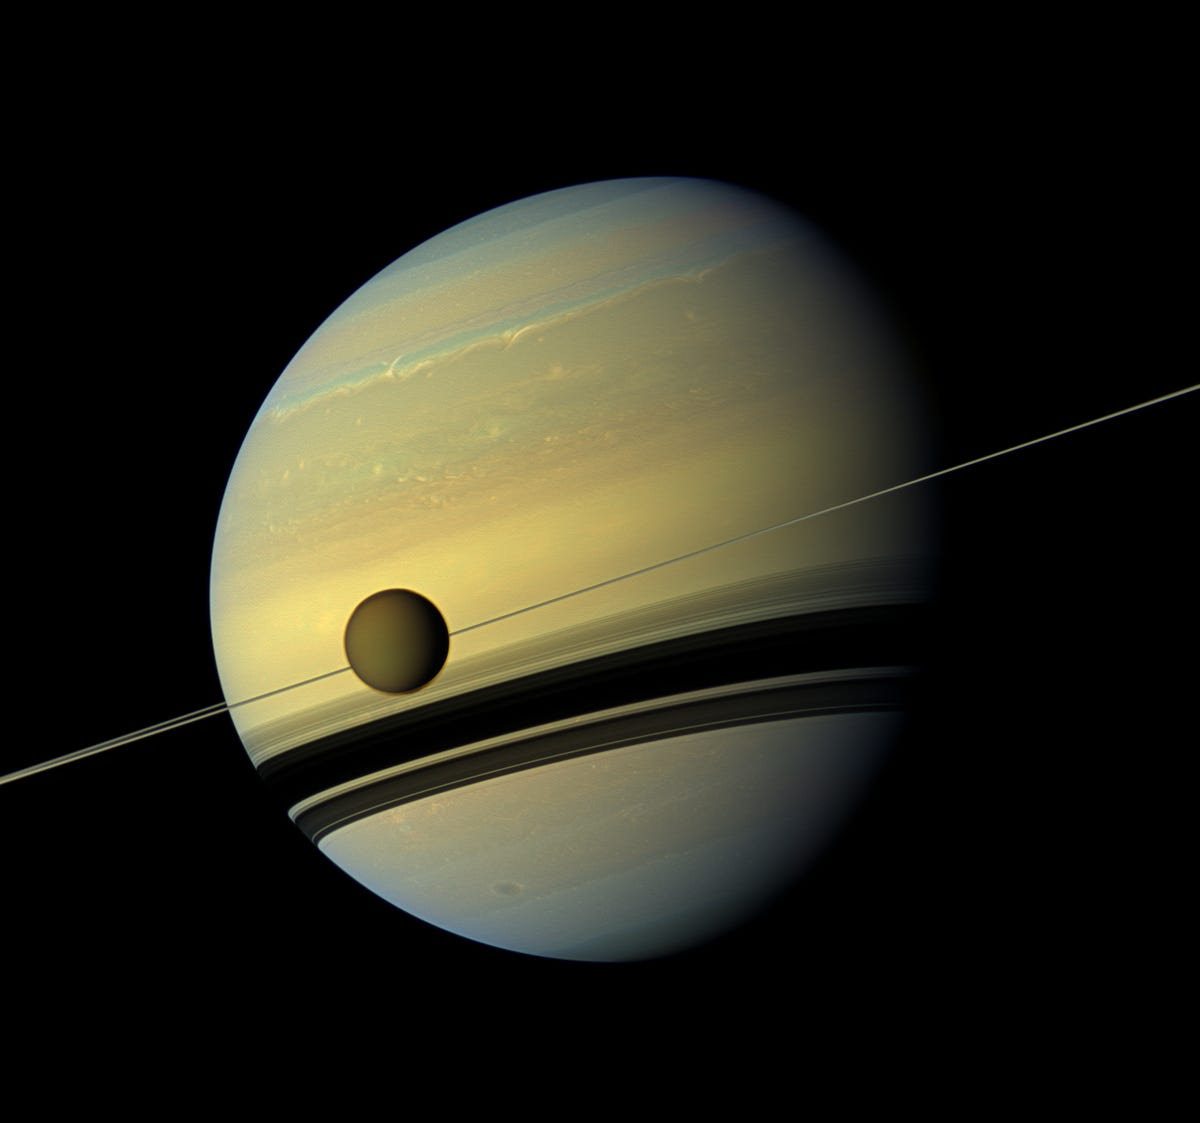 The probe's views of Titan in front of Saturn were striking.